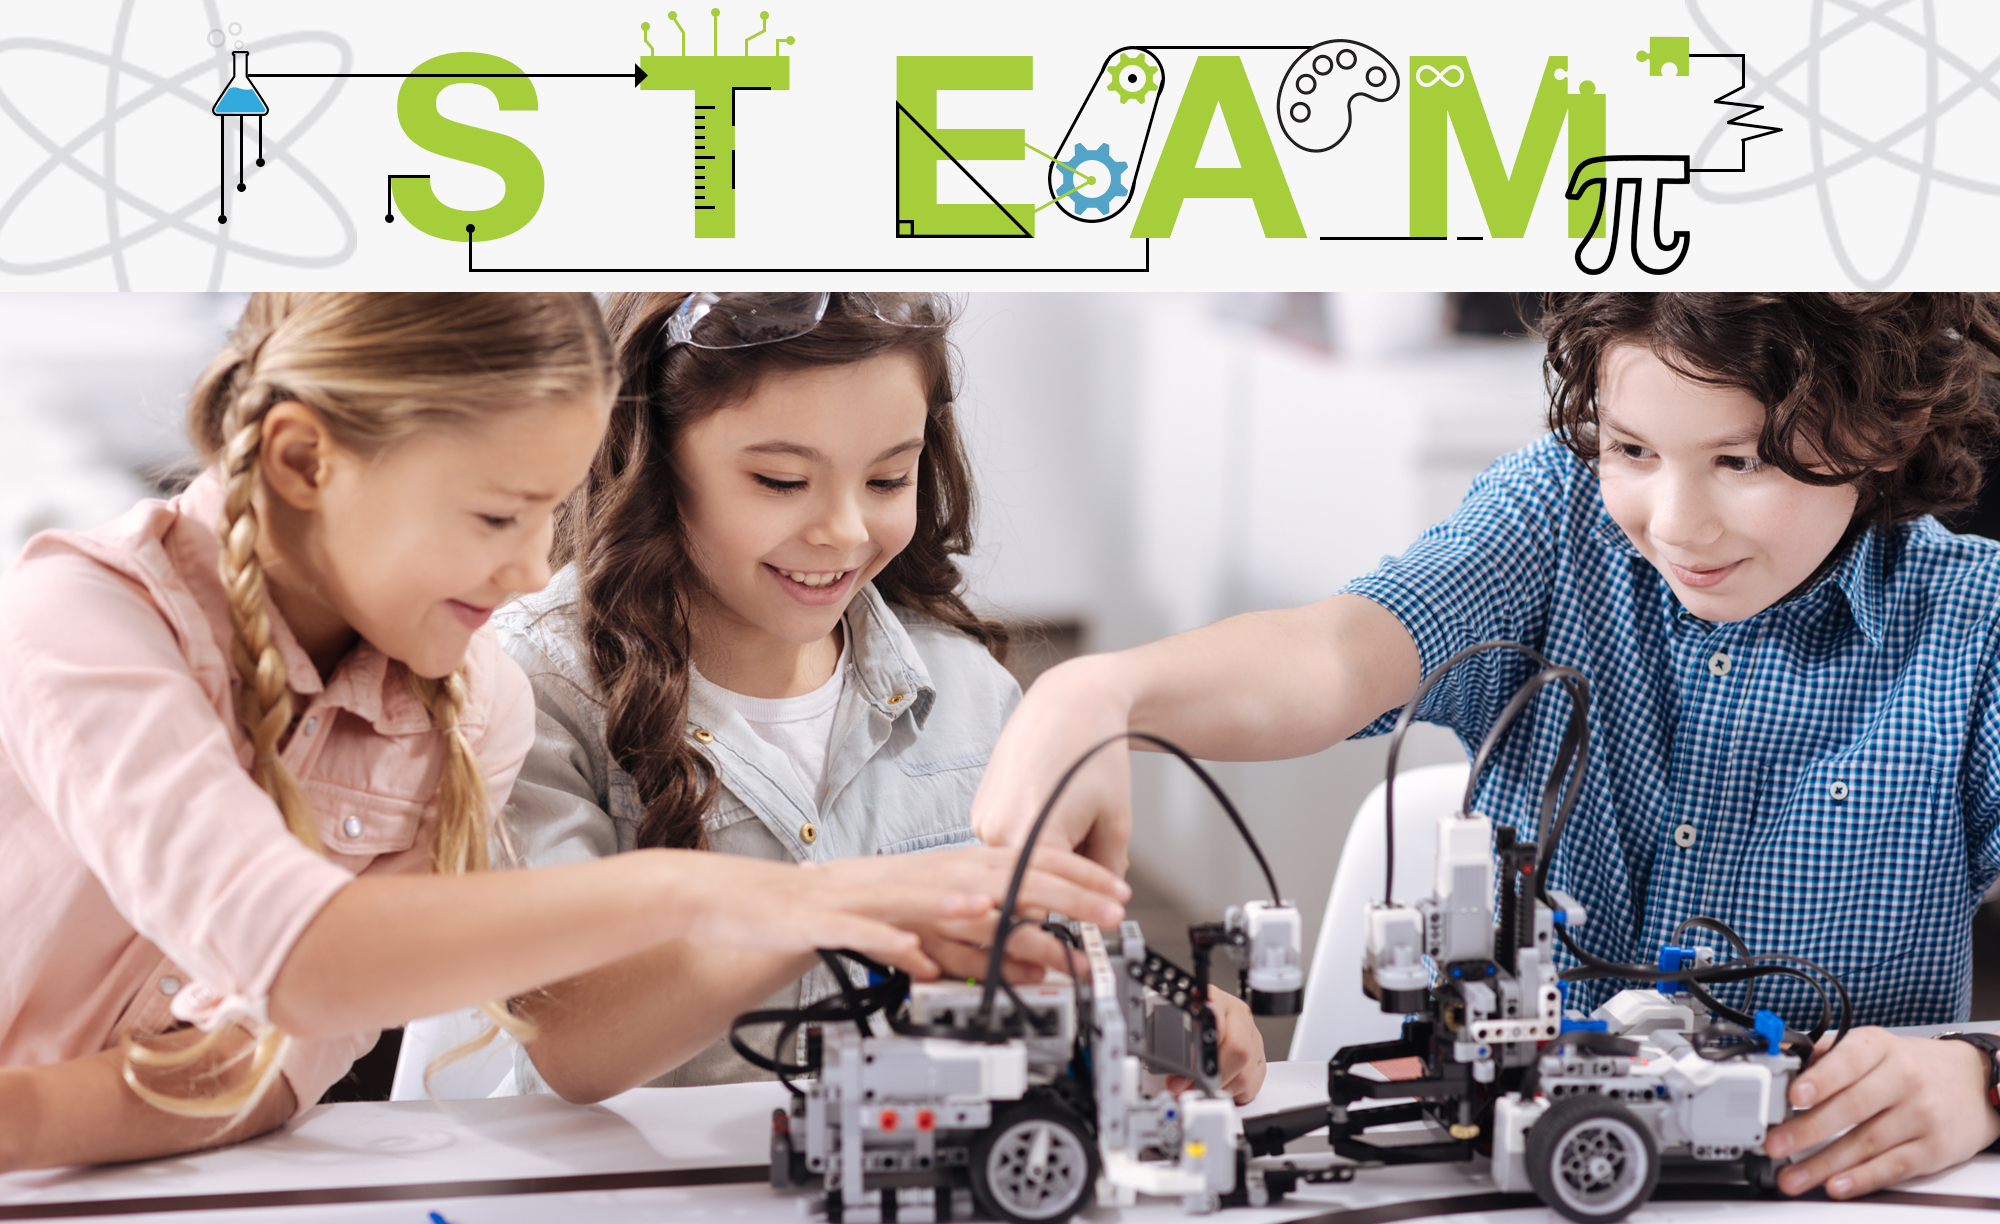 STEM KIDS ROBOTICS